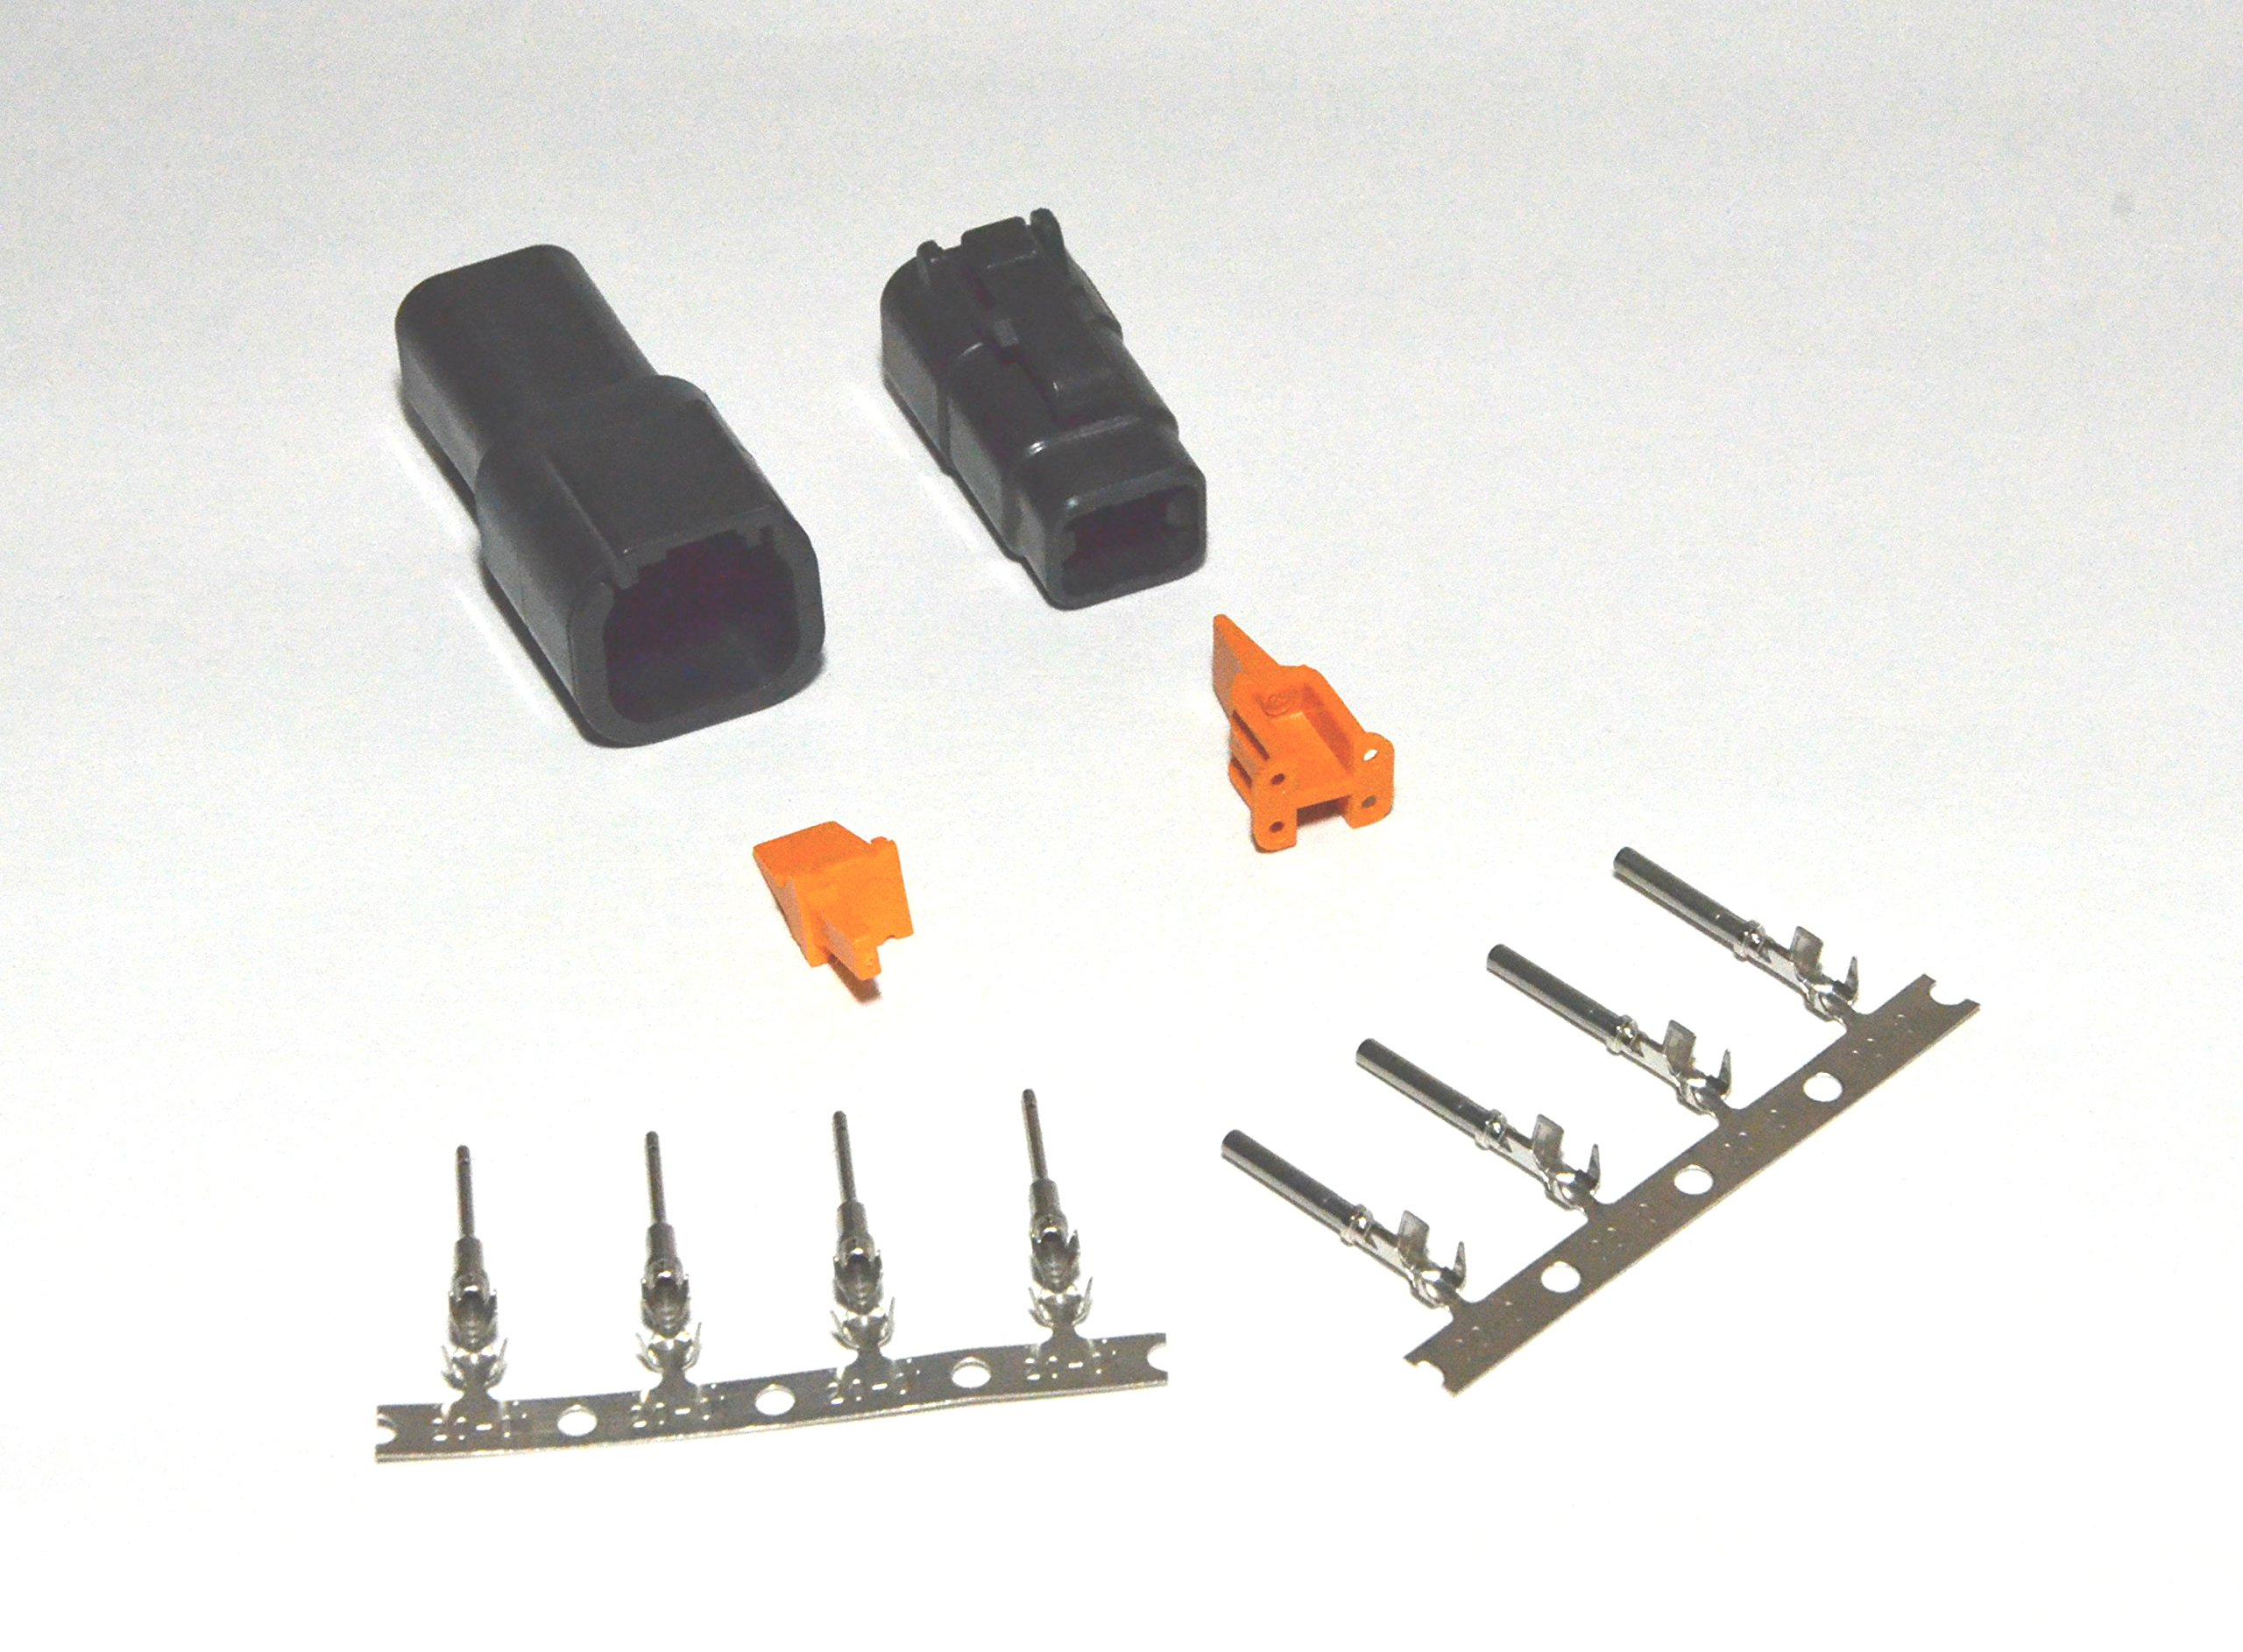 Deutsch DTM Black 4-pin Connector Kit with 20 Gauge Stamped Contacts by Deutsch